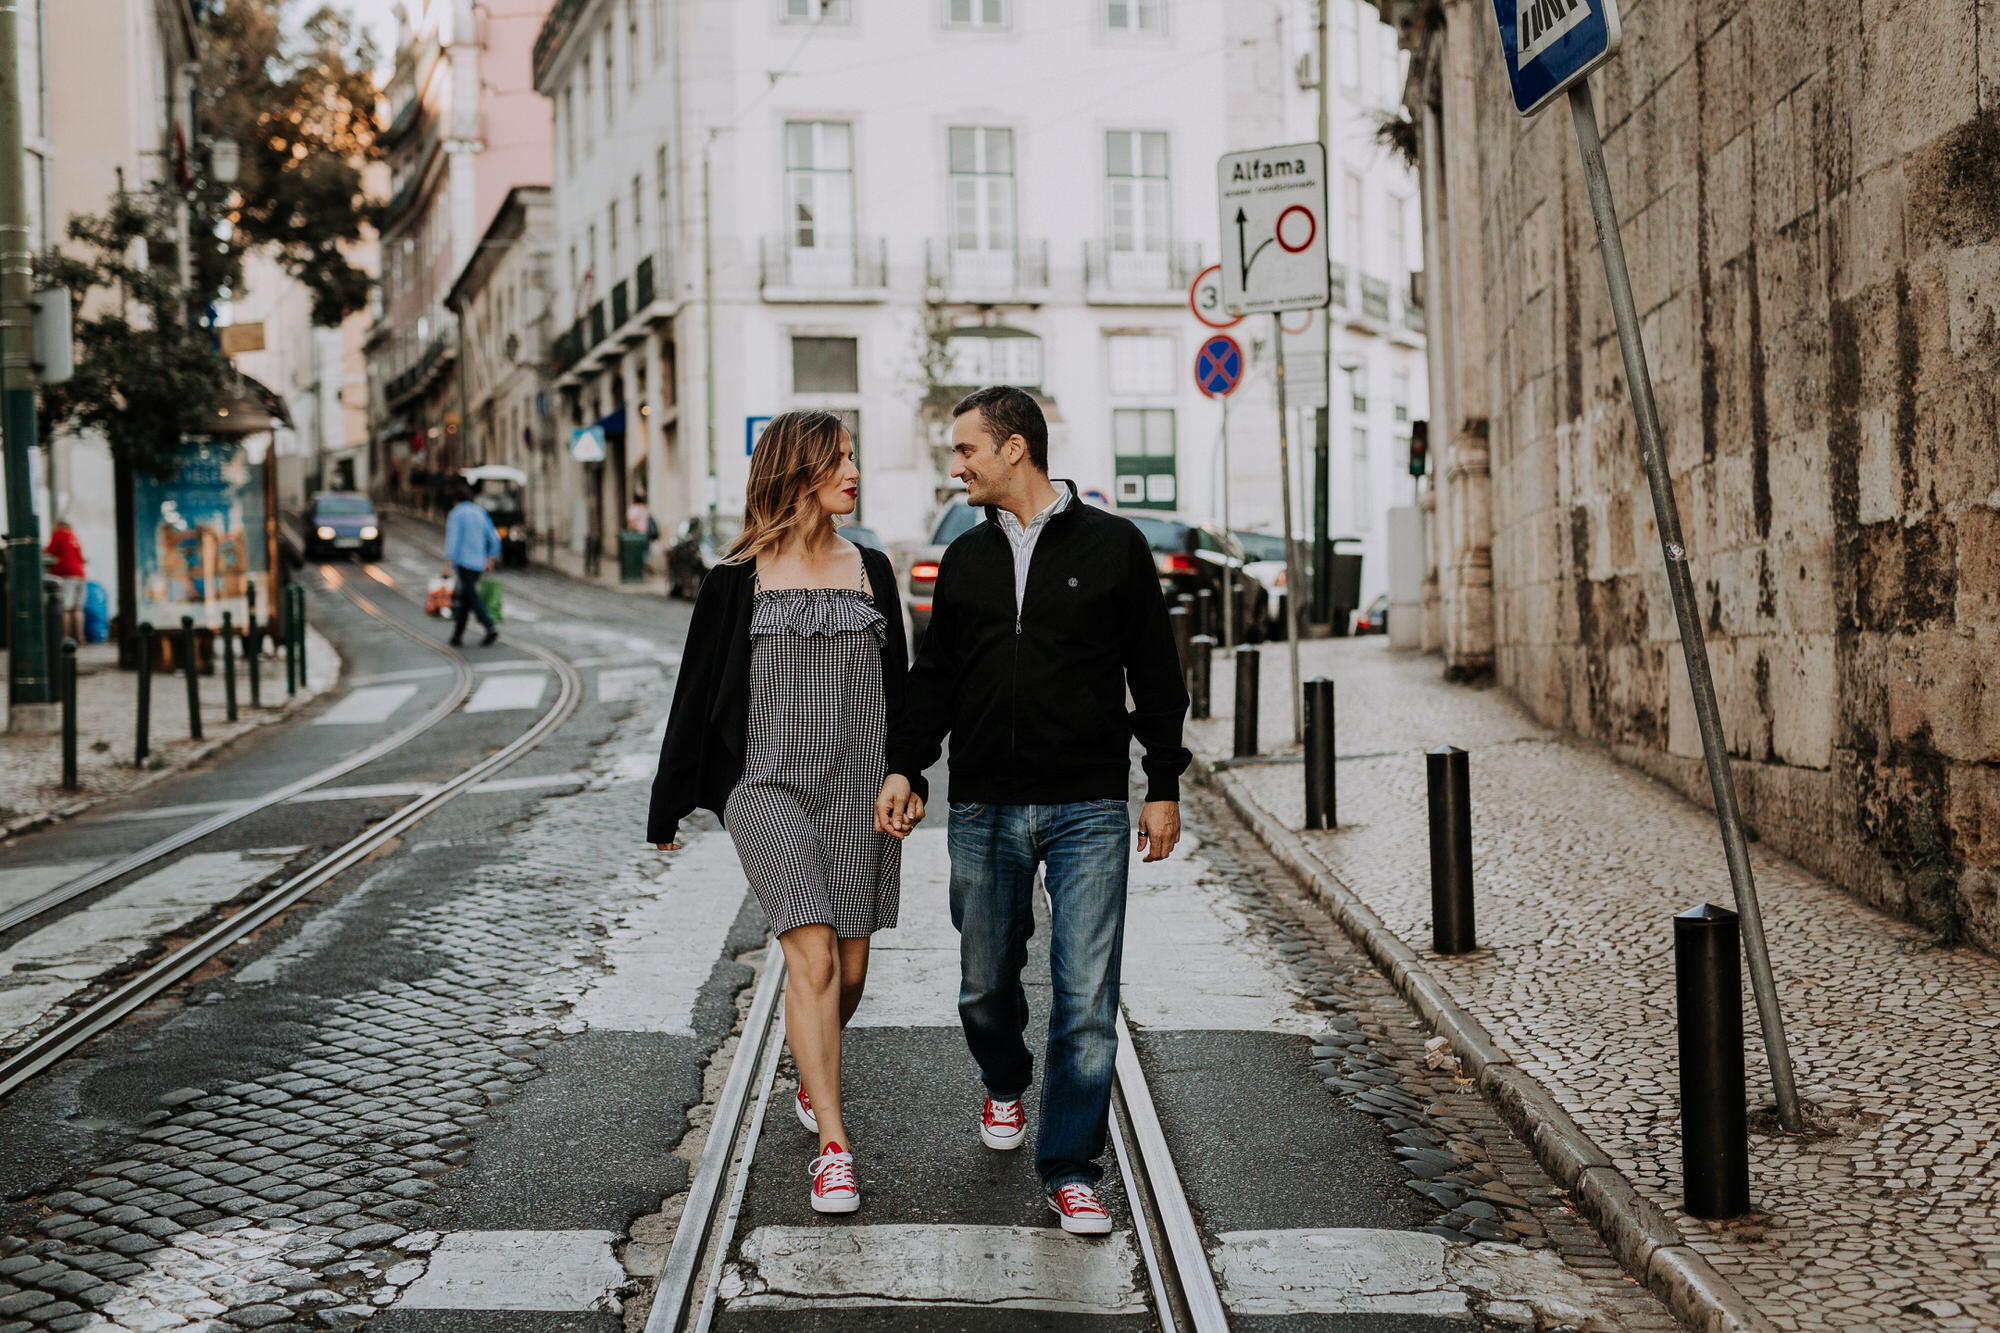 24 -sessao-noivado-engagement-session-alfama-lisboa-town-wedding-photography-photographer-natural-best-venue-planner-destination-filipe-santiago-fotografia